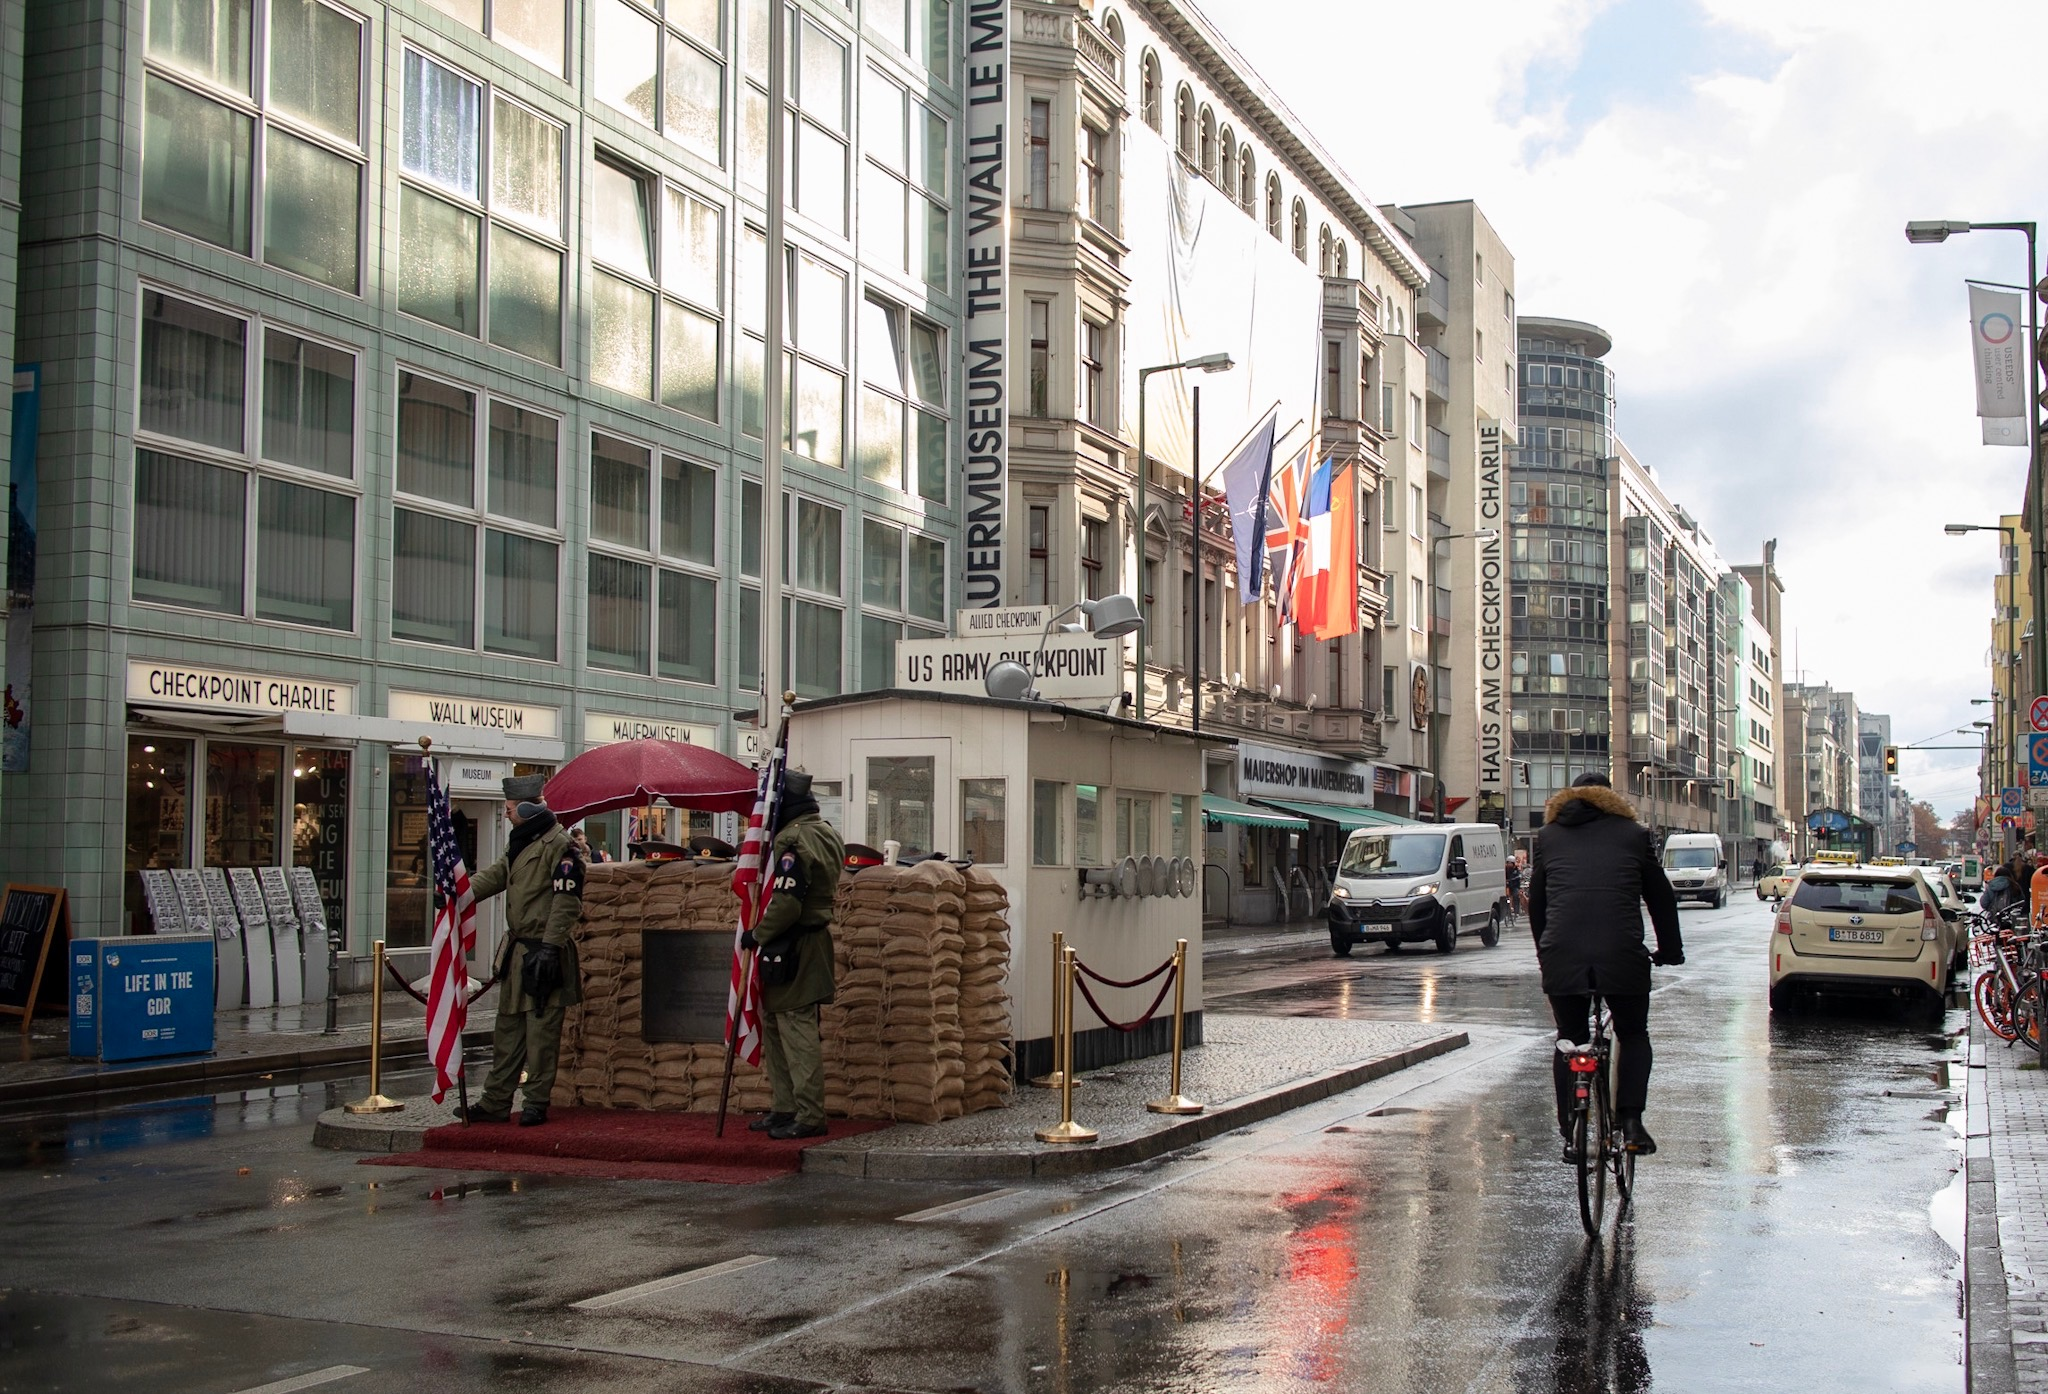 Checkpoint Charlie Border Crossing